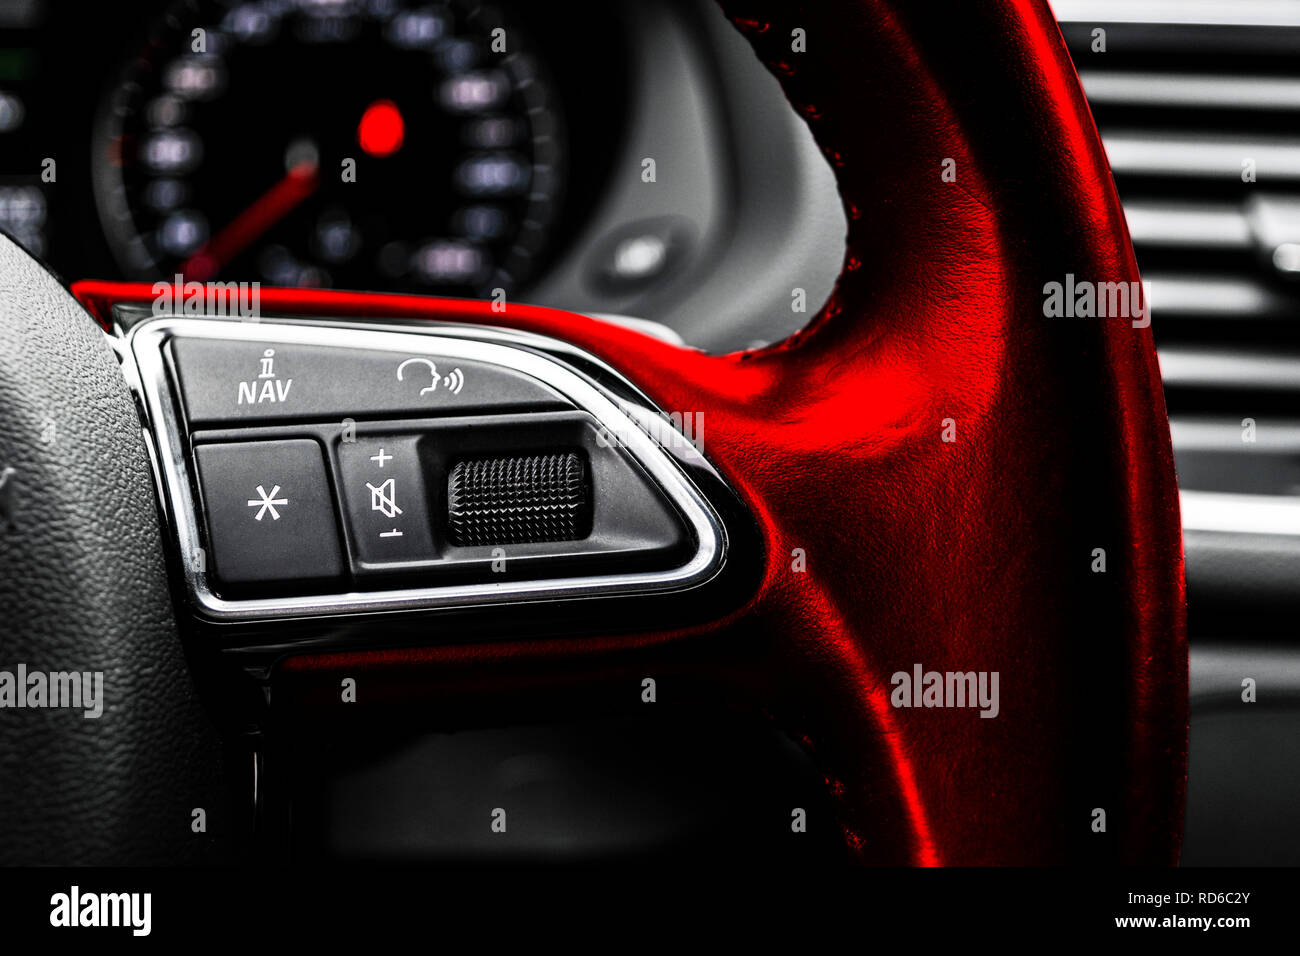 Modern car interior. Red Steering wheel with media phone control buttons, navigation multimedia system background. Car interior details. Car detailing - Stock Image